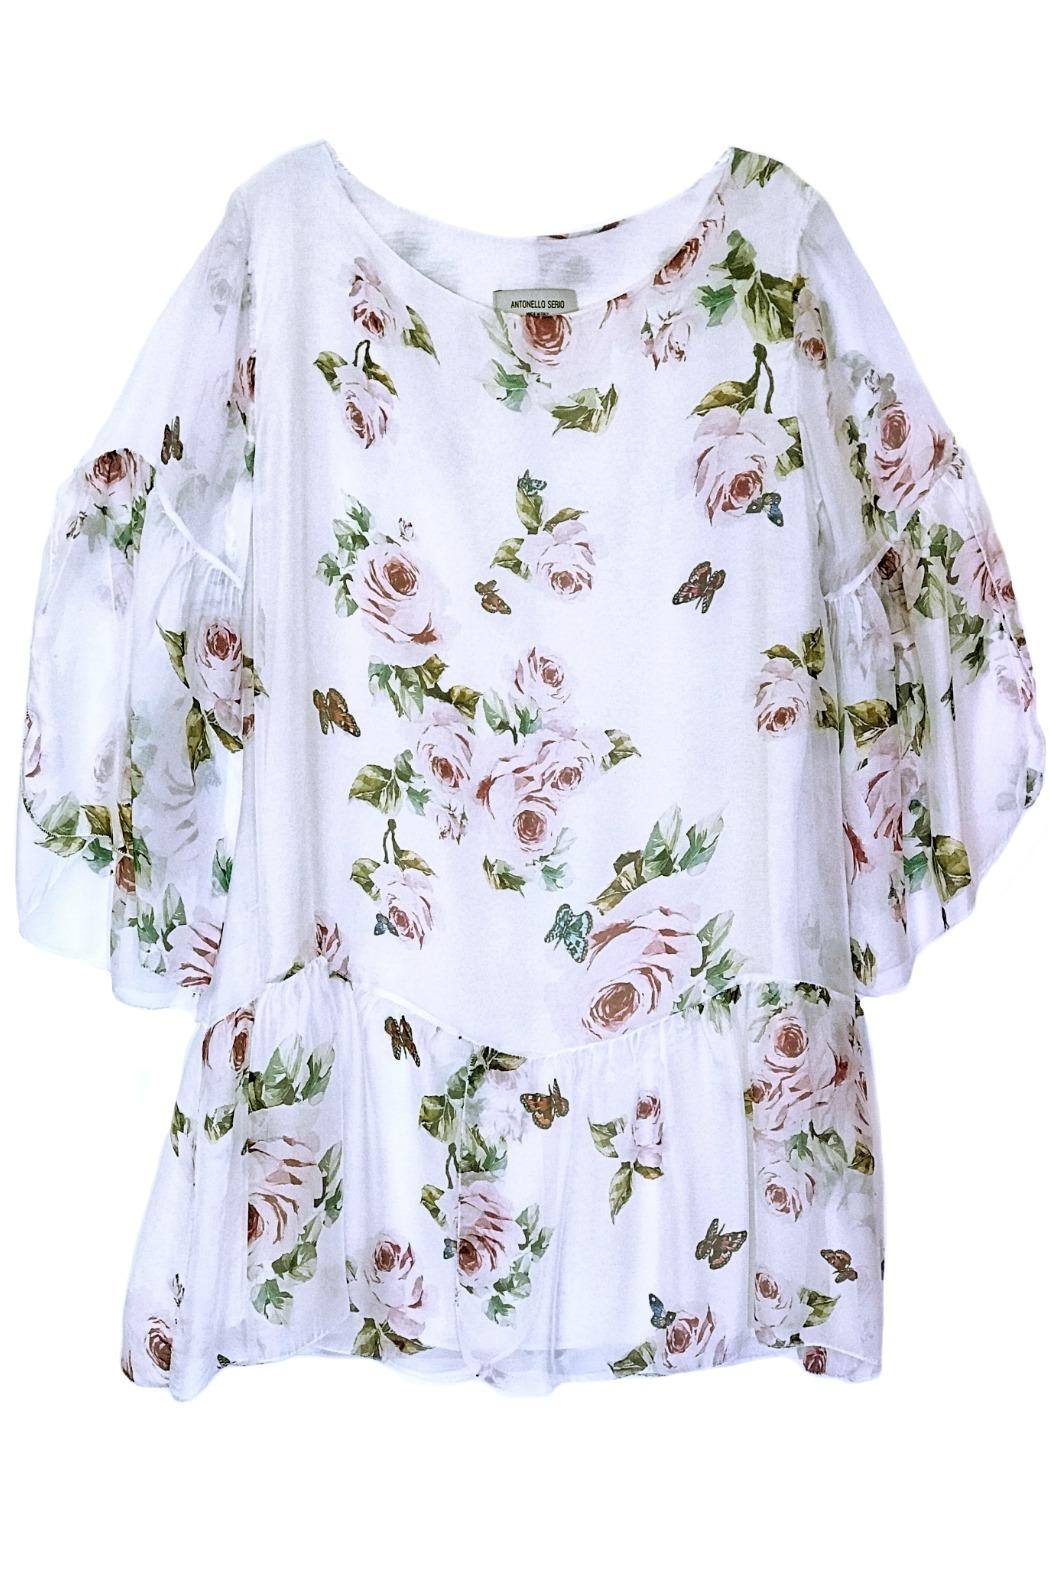 ANTONELLO SERIO Floral Print Dress - Main Image